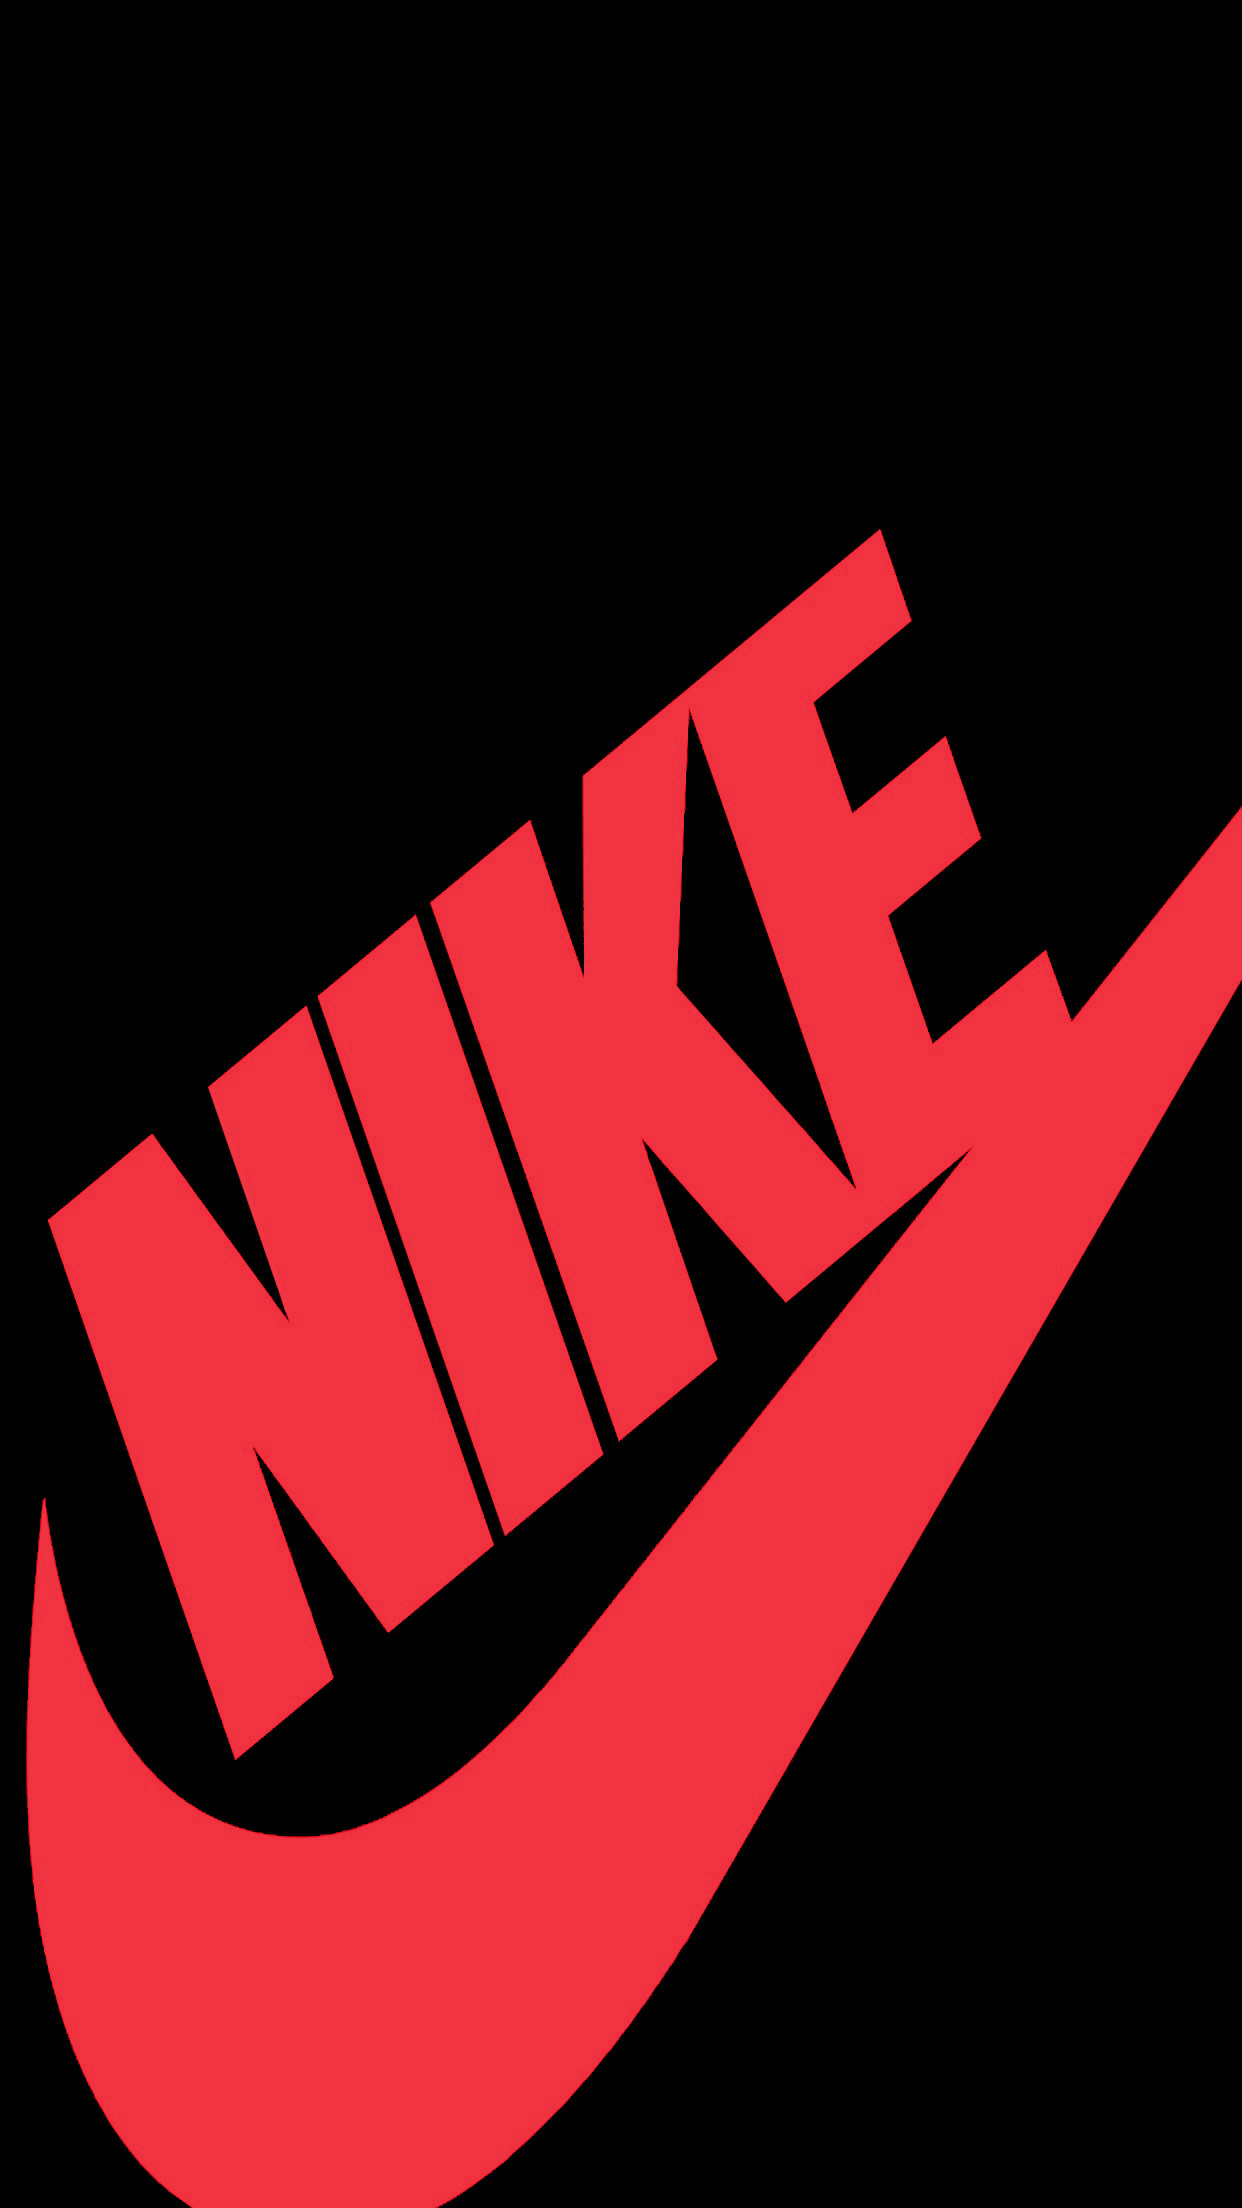 Nike Air Wallpaper 64 Pictures